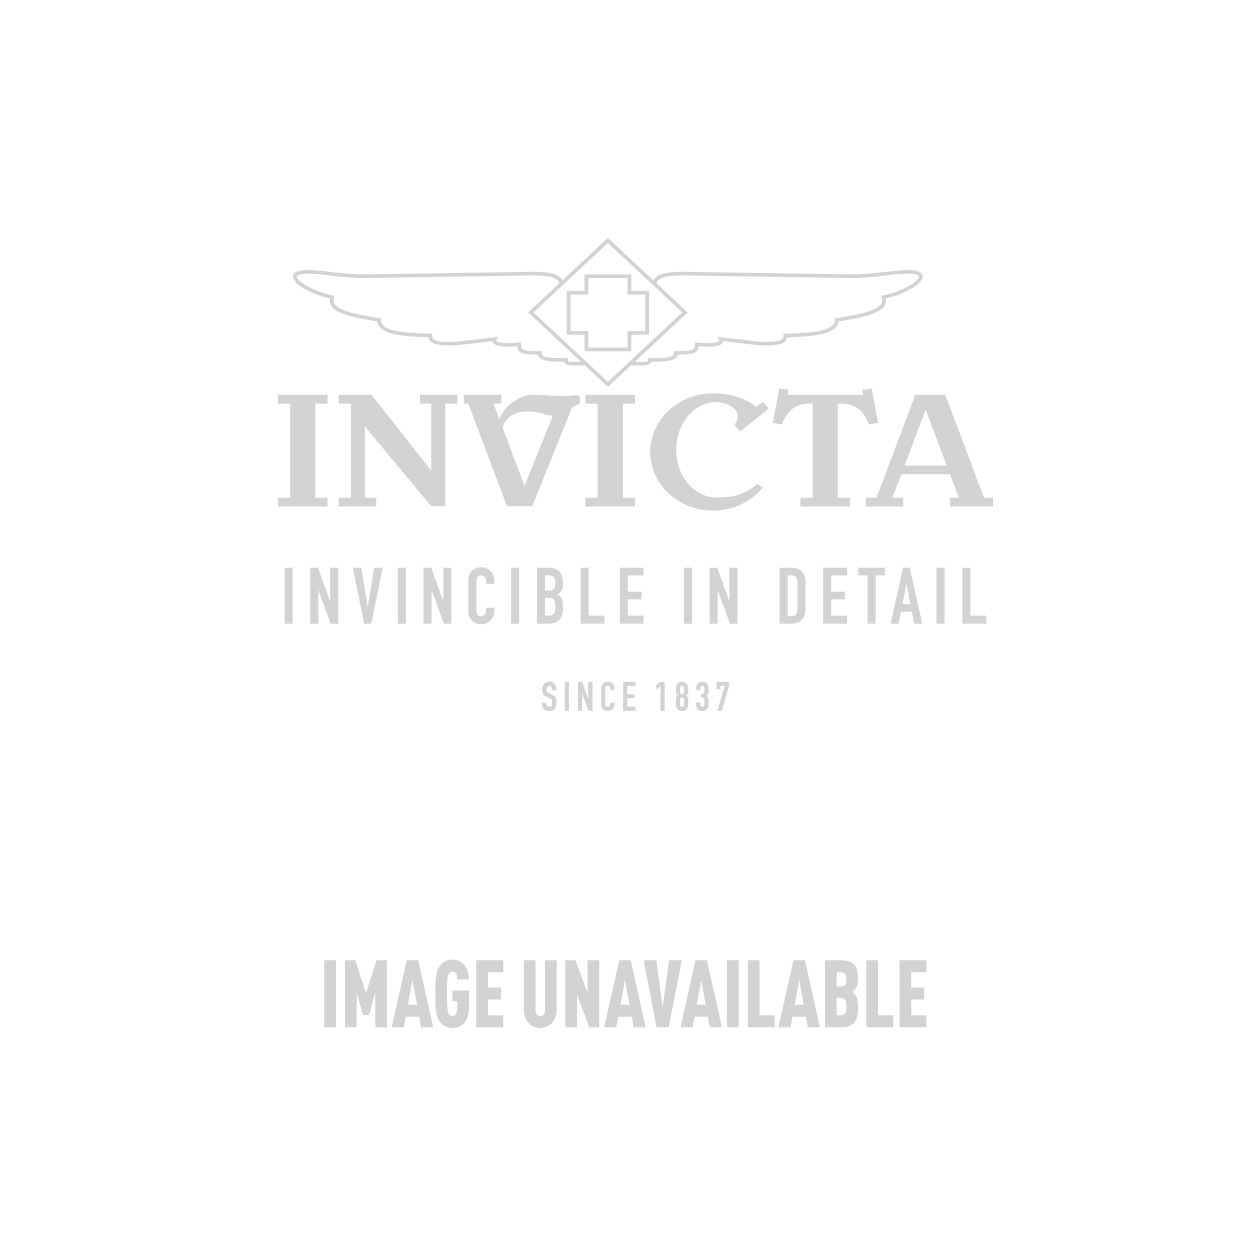 Invicta Angel Swiss Movement Quartz Watch - Gold case with White tone Polyurethane band - Model 0488